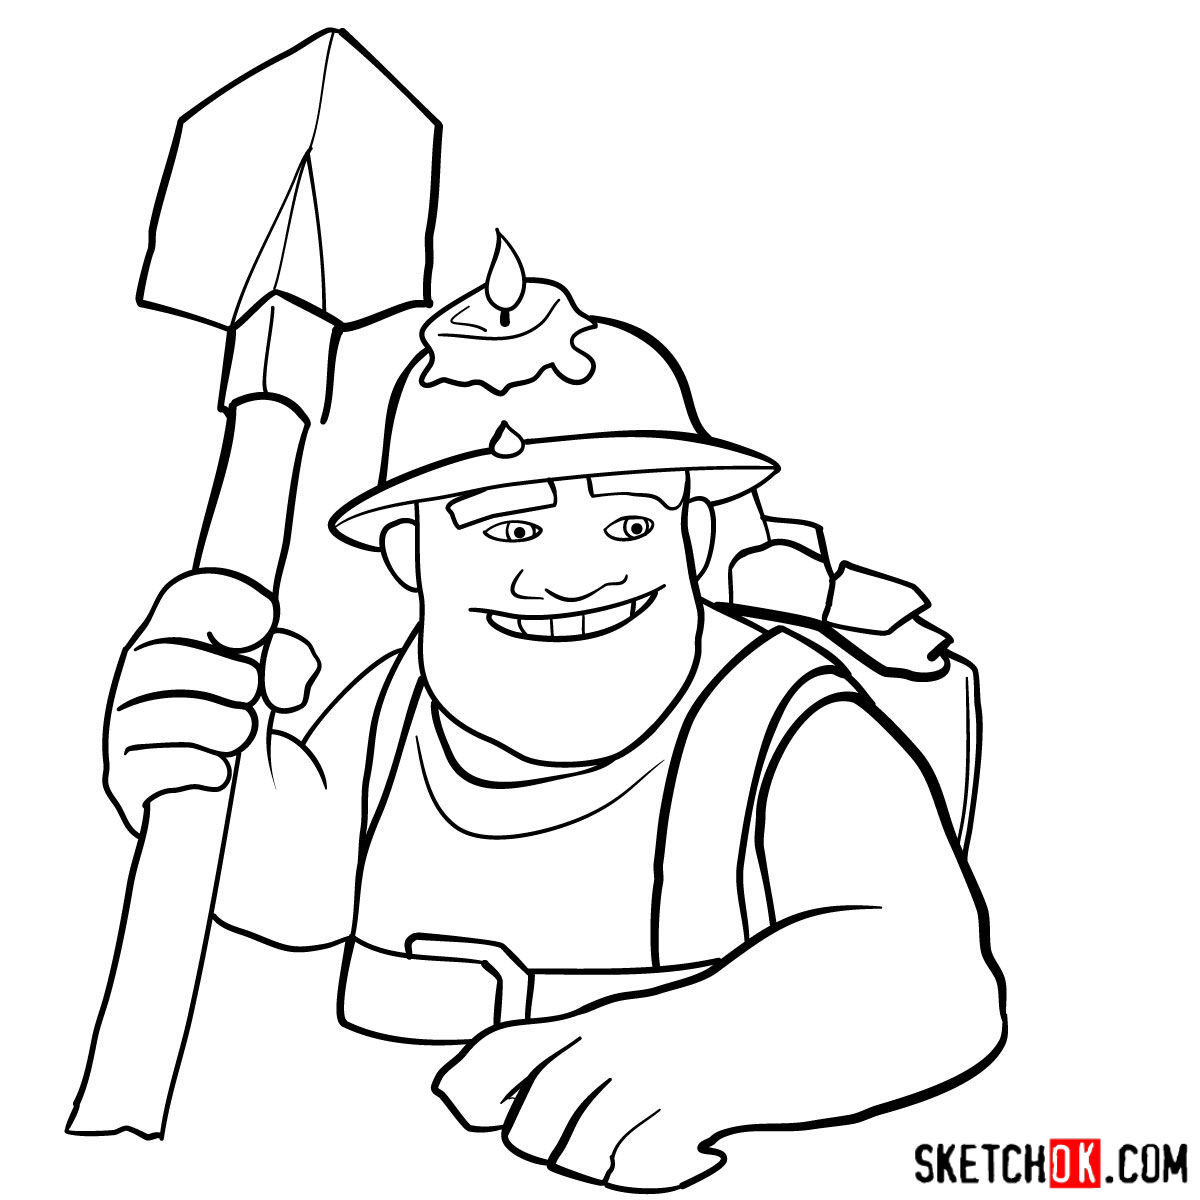 How to draw Miner from Clash of Clans game - step 13